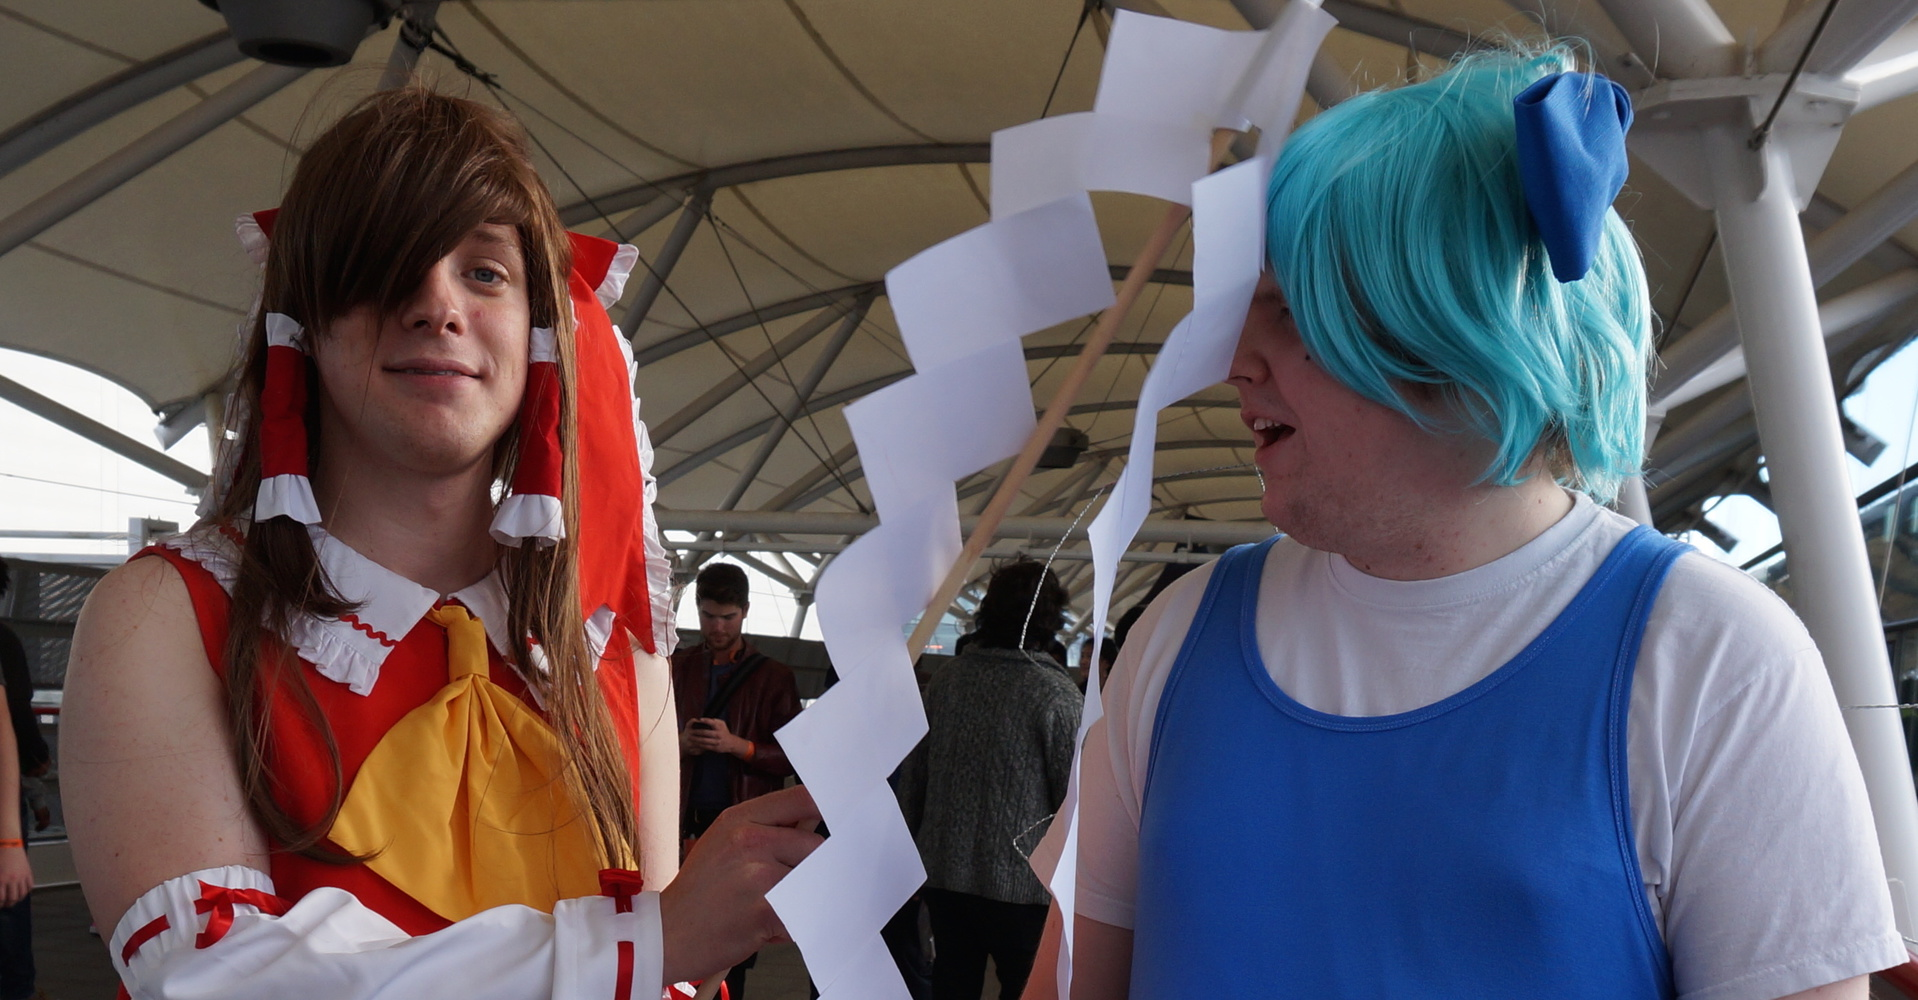 Two white dudes dressed as Touhou characters. The one on the left (Reimu, in a frilly red dress and long brown wig) is hitting the one on the right (Cirno, wearing a short blue wig, a blue dress, and wire fairy wings) with a home-made gohei.